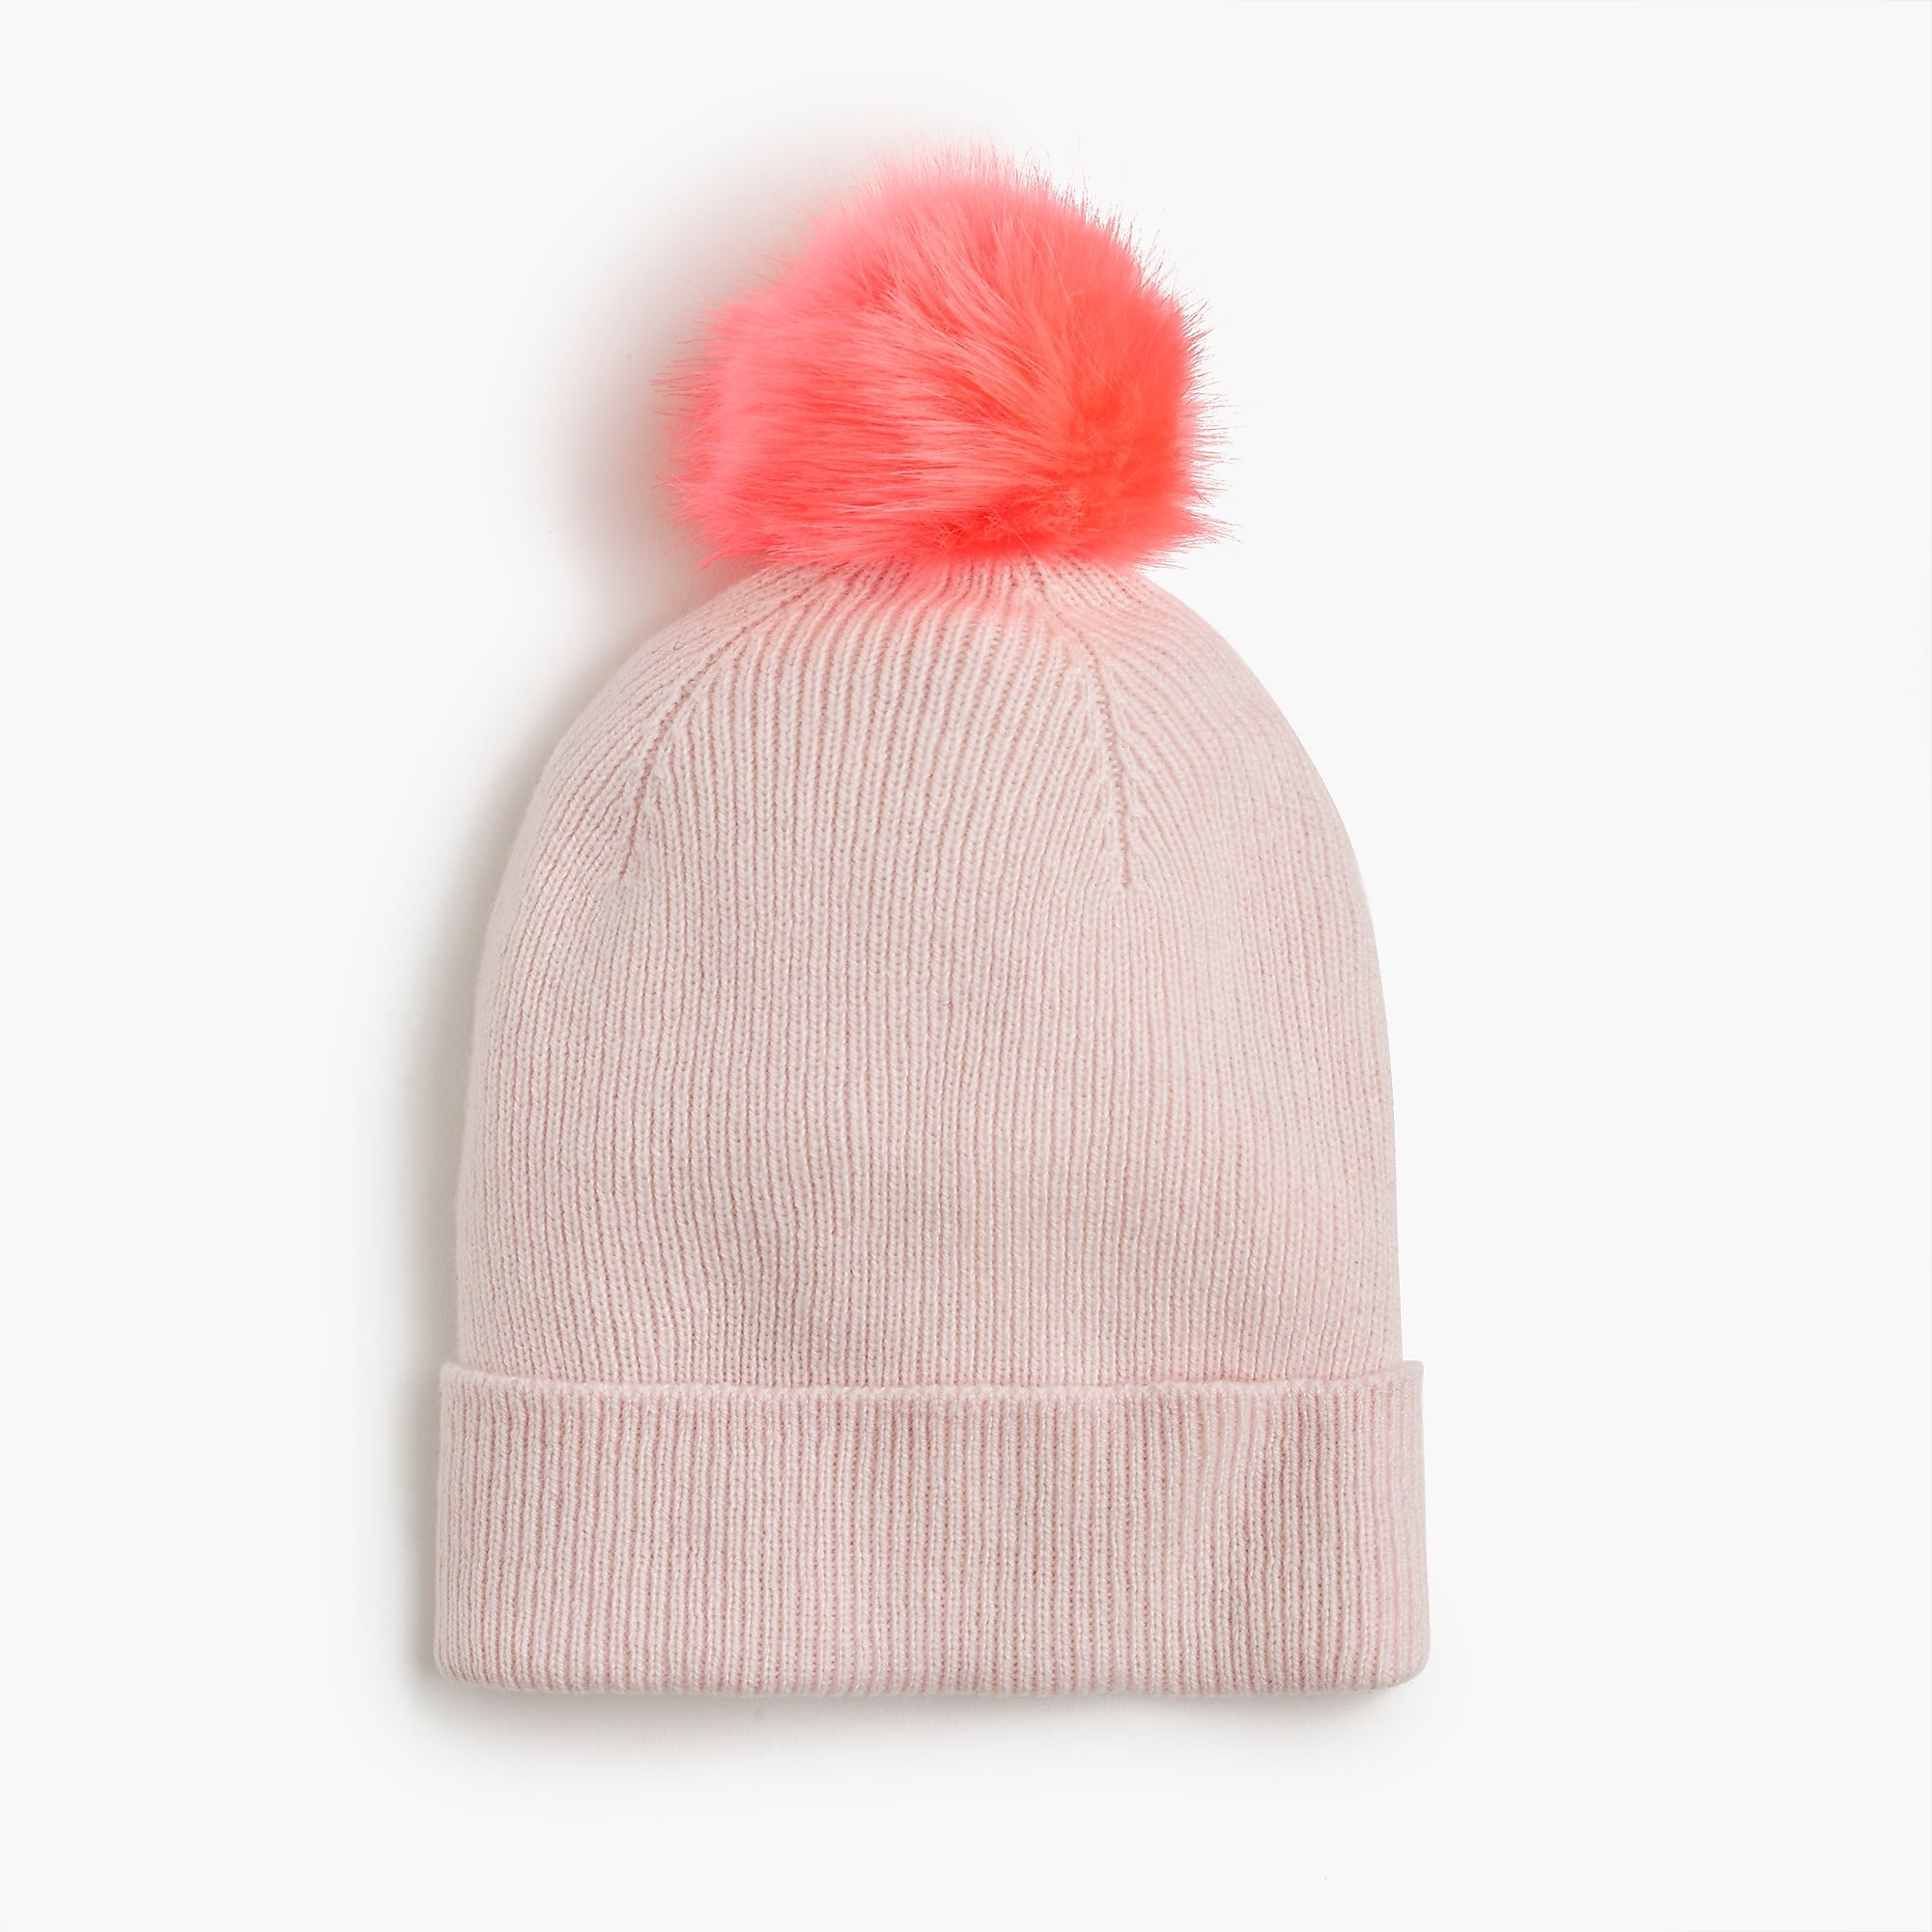 Beautiful Girls Knit Hat with Furry Pom Pom Girl Cold Weather Girls Knit Hats Of Delightful 44 Pics Girls Knit Hats